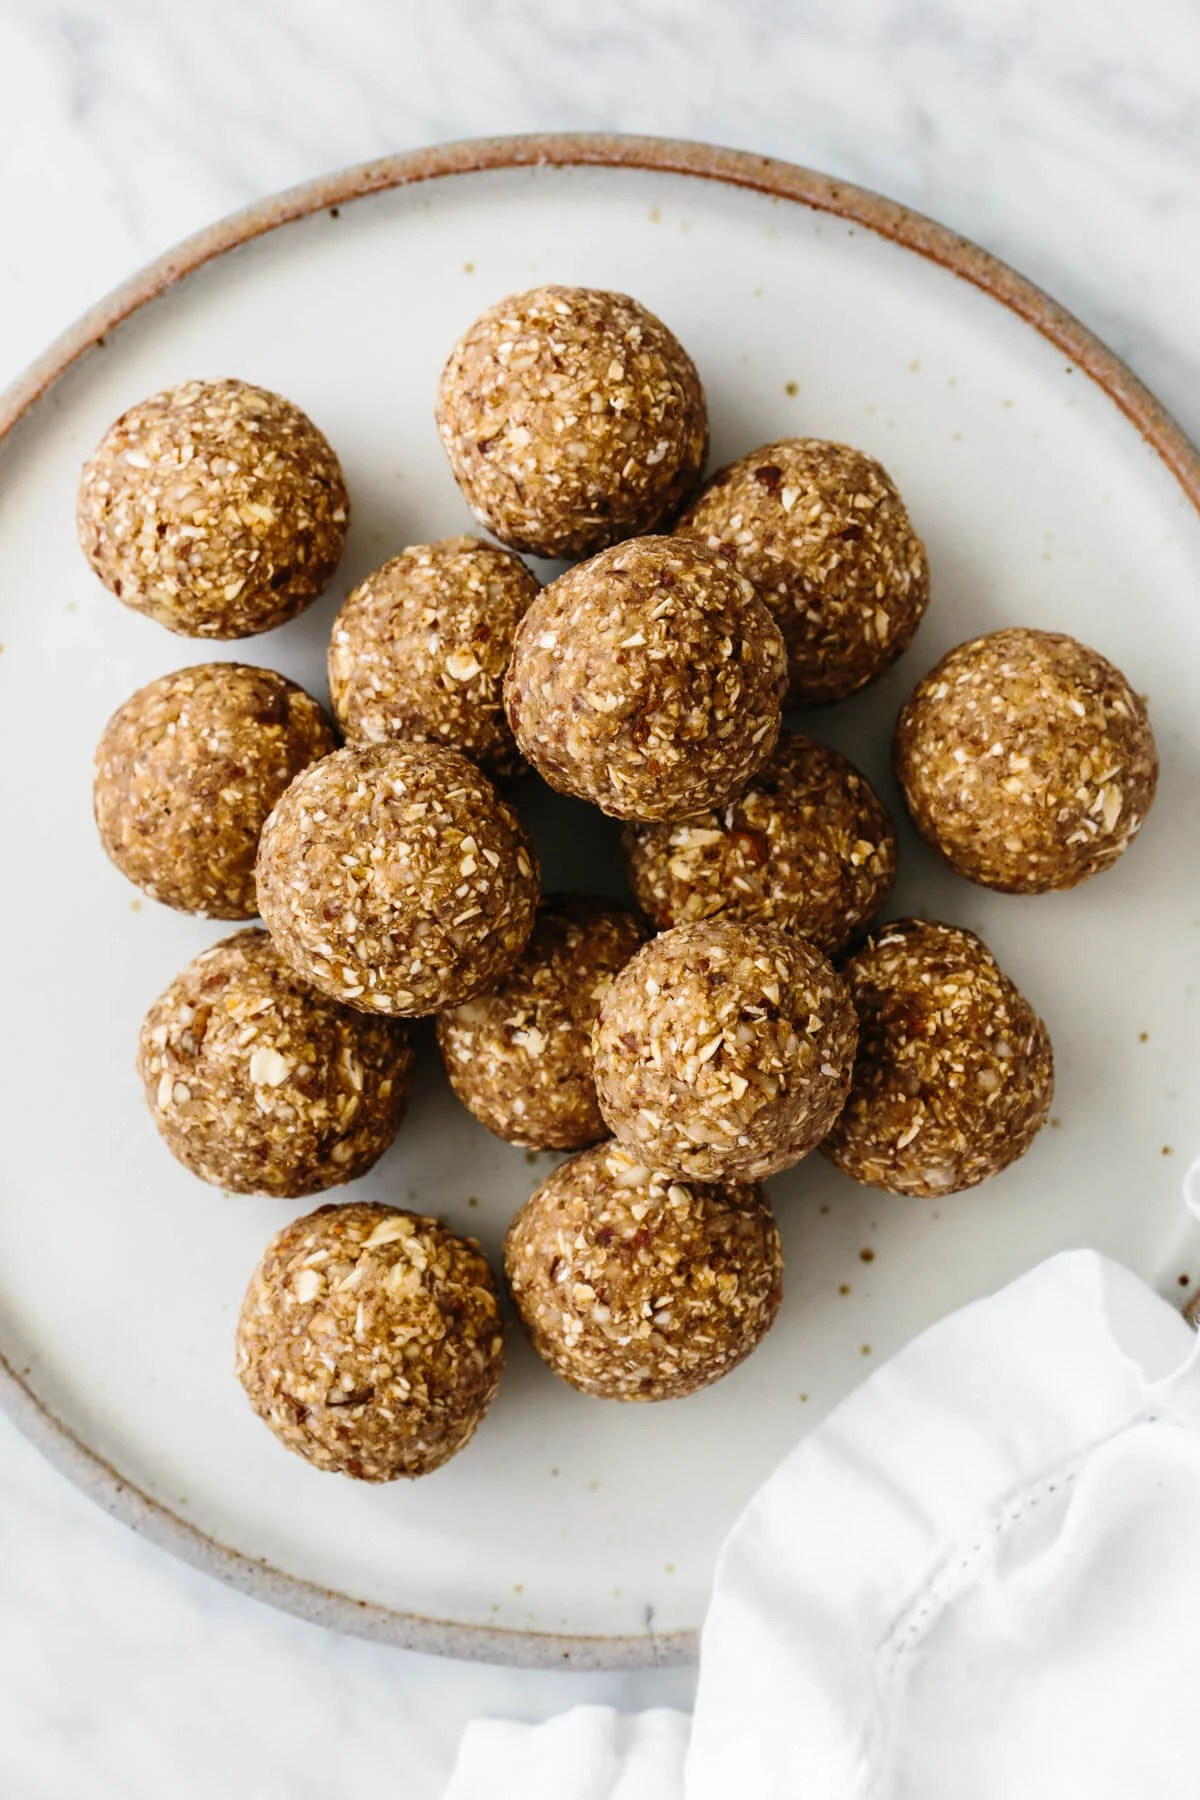 A stack of energy balls on a white plate.